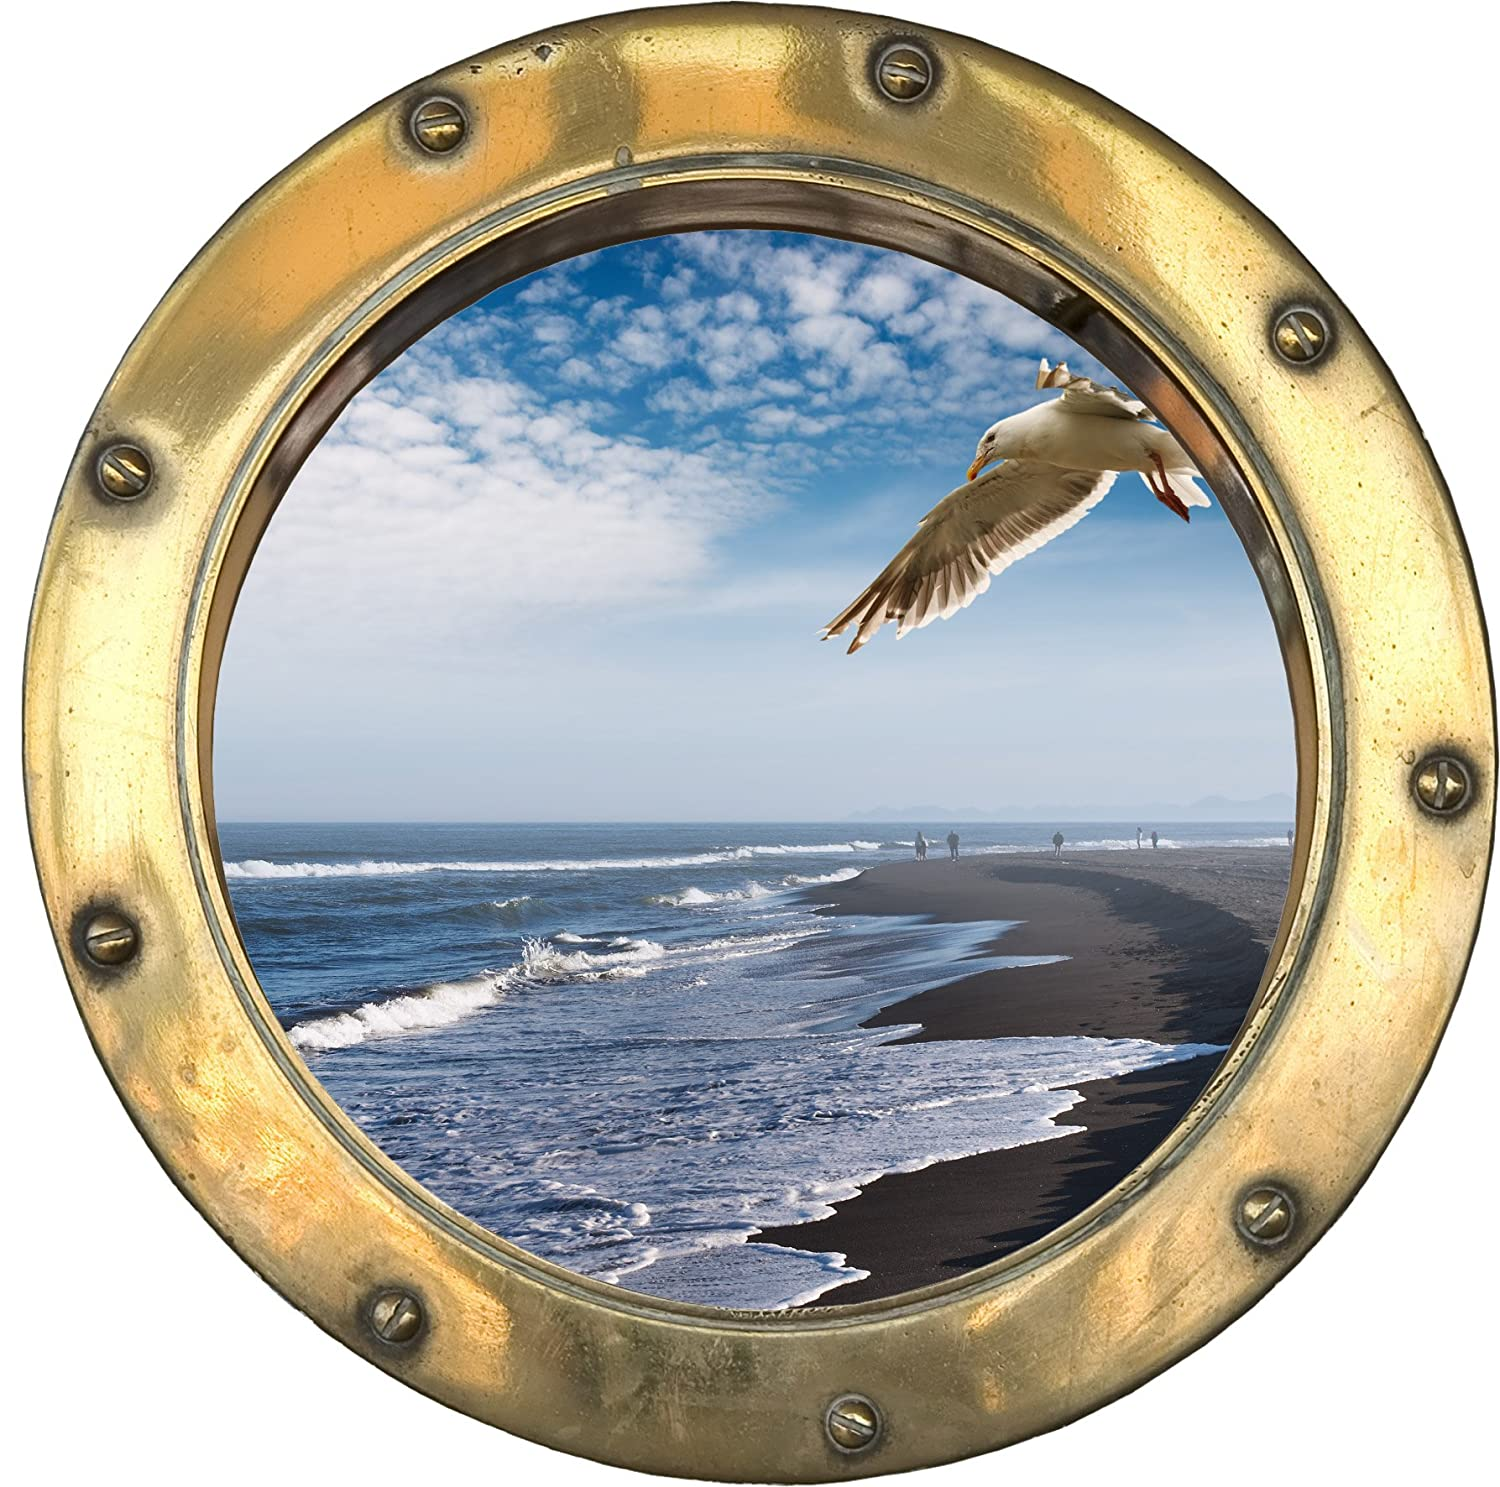 H316 self adhesive sticker optical illusion porthole seagull 30 x 30 cm amazon co uk kitchen home